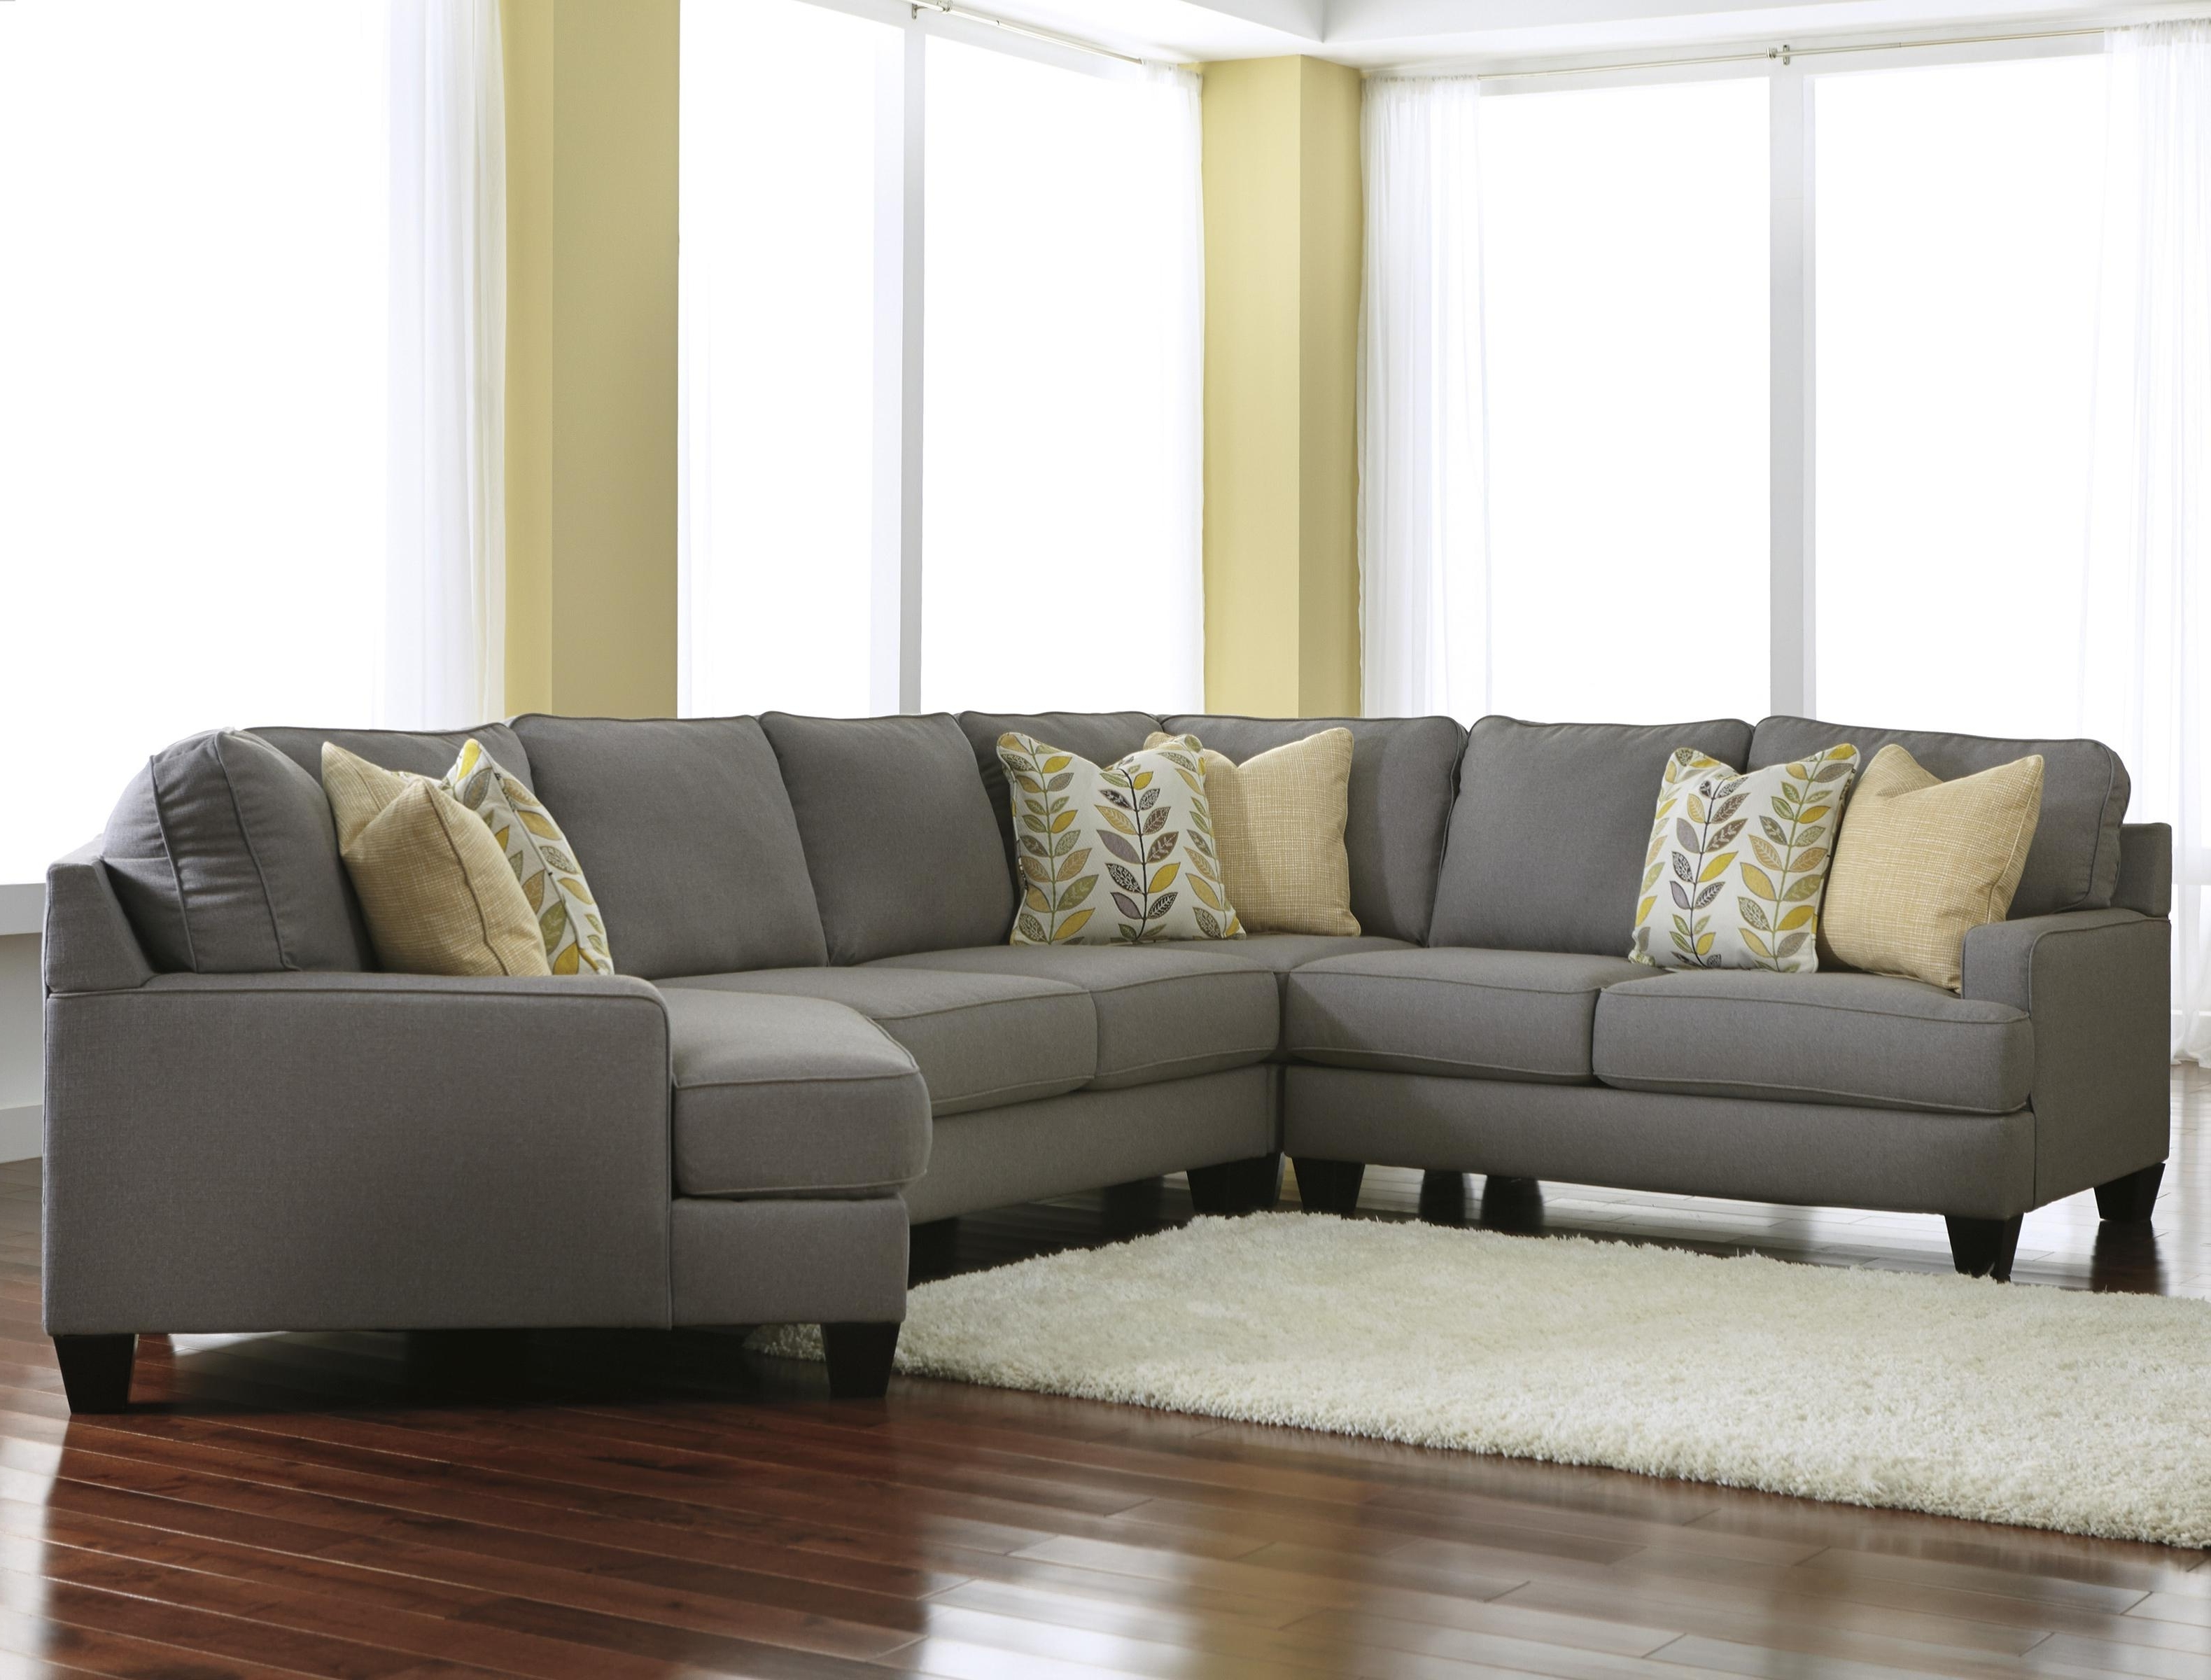 Modern 4 Piece Sectional Sofa With Right Cuddler & Reversible Seat Throughout 2019 Harrisburg Pa Sectional Sofas (View 13 of 20)